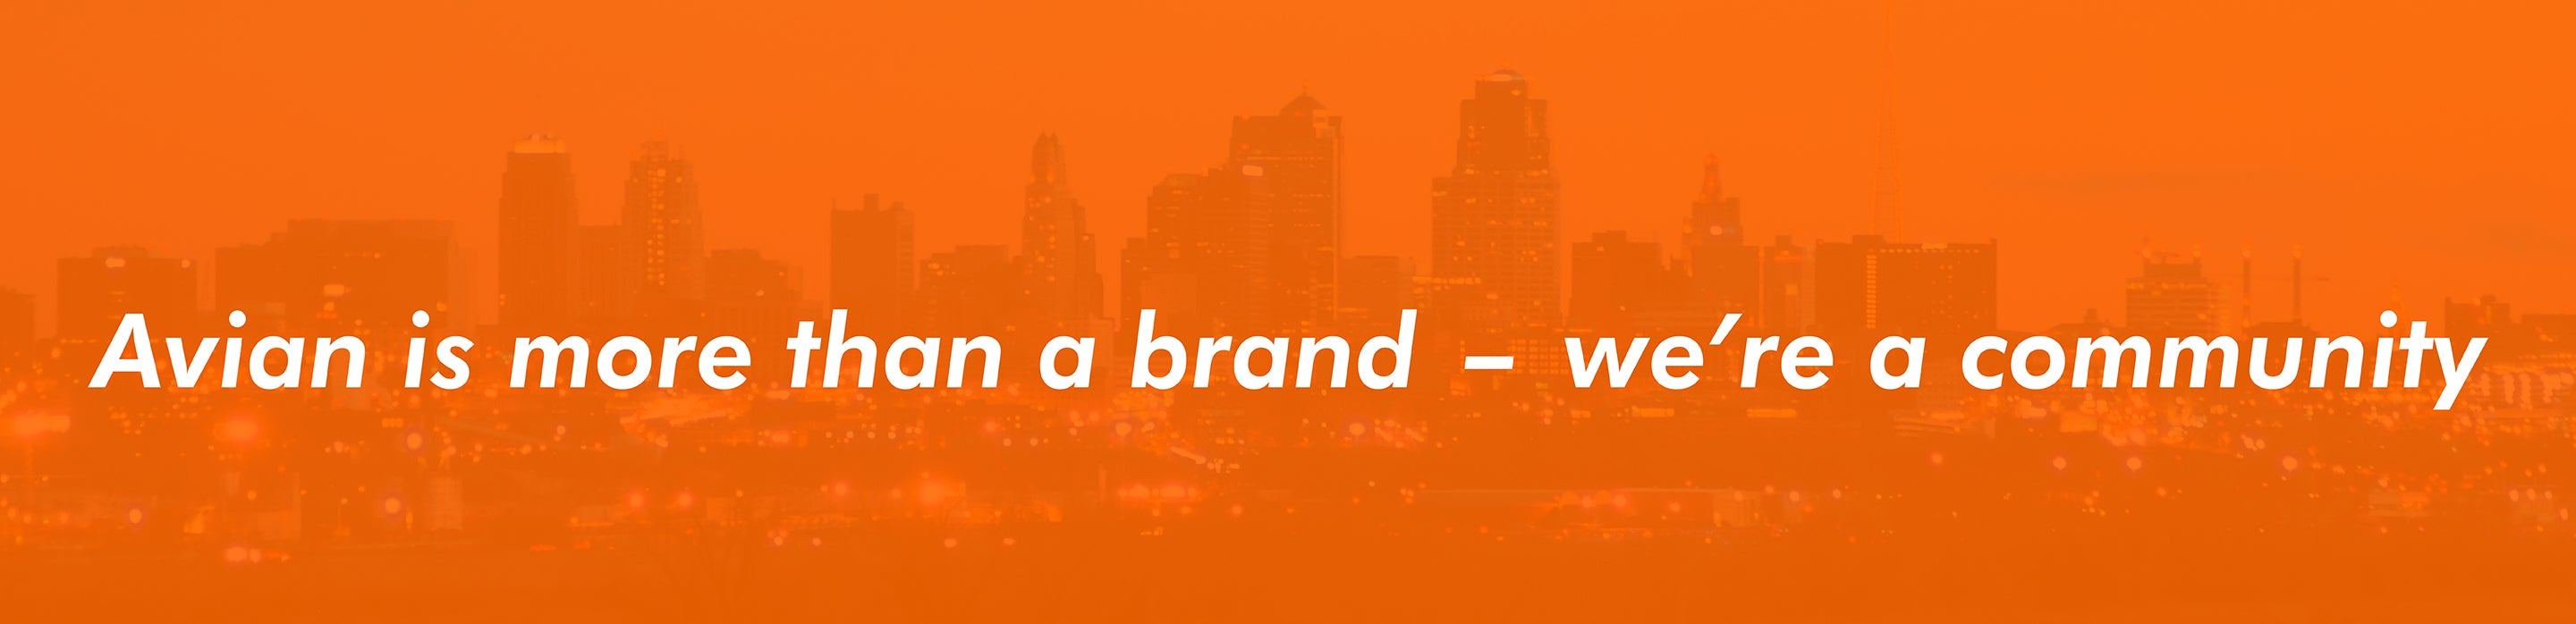 Avian is more than just a brand -- we're a community